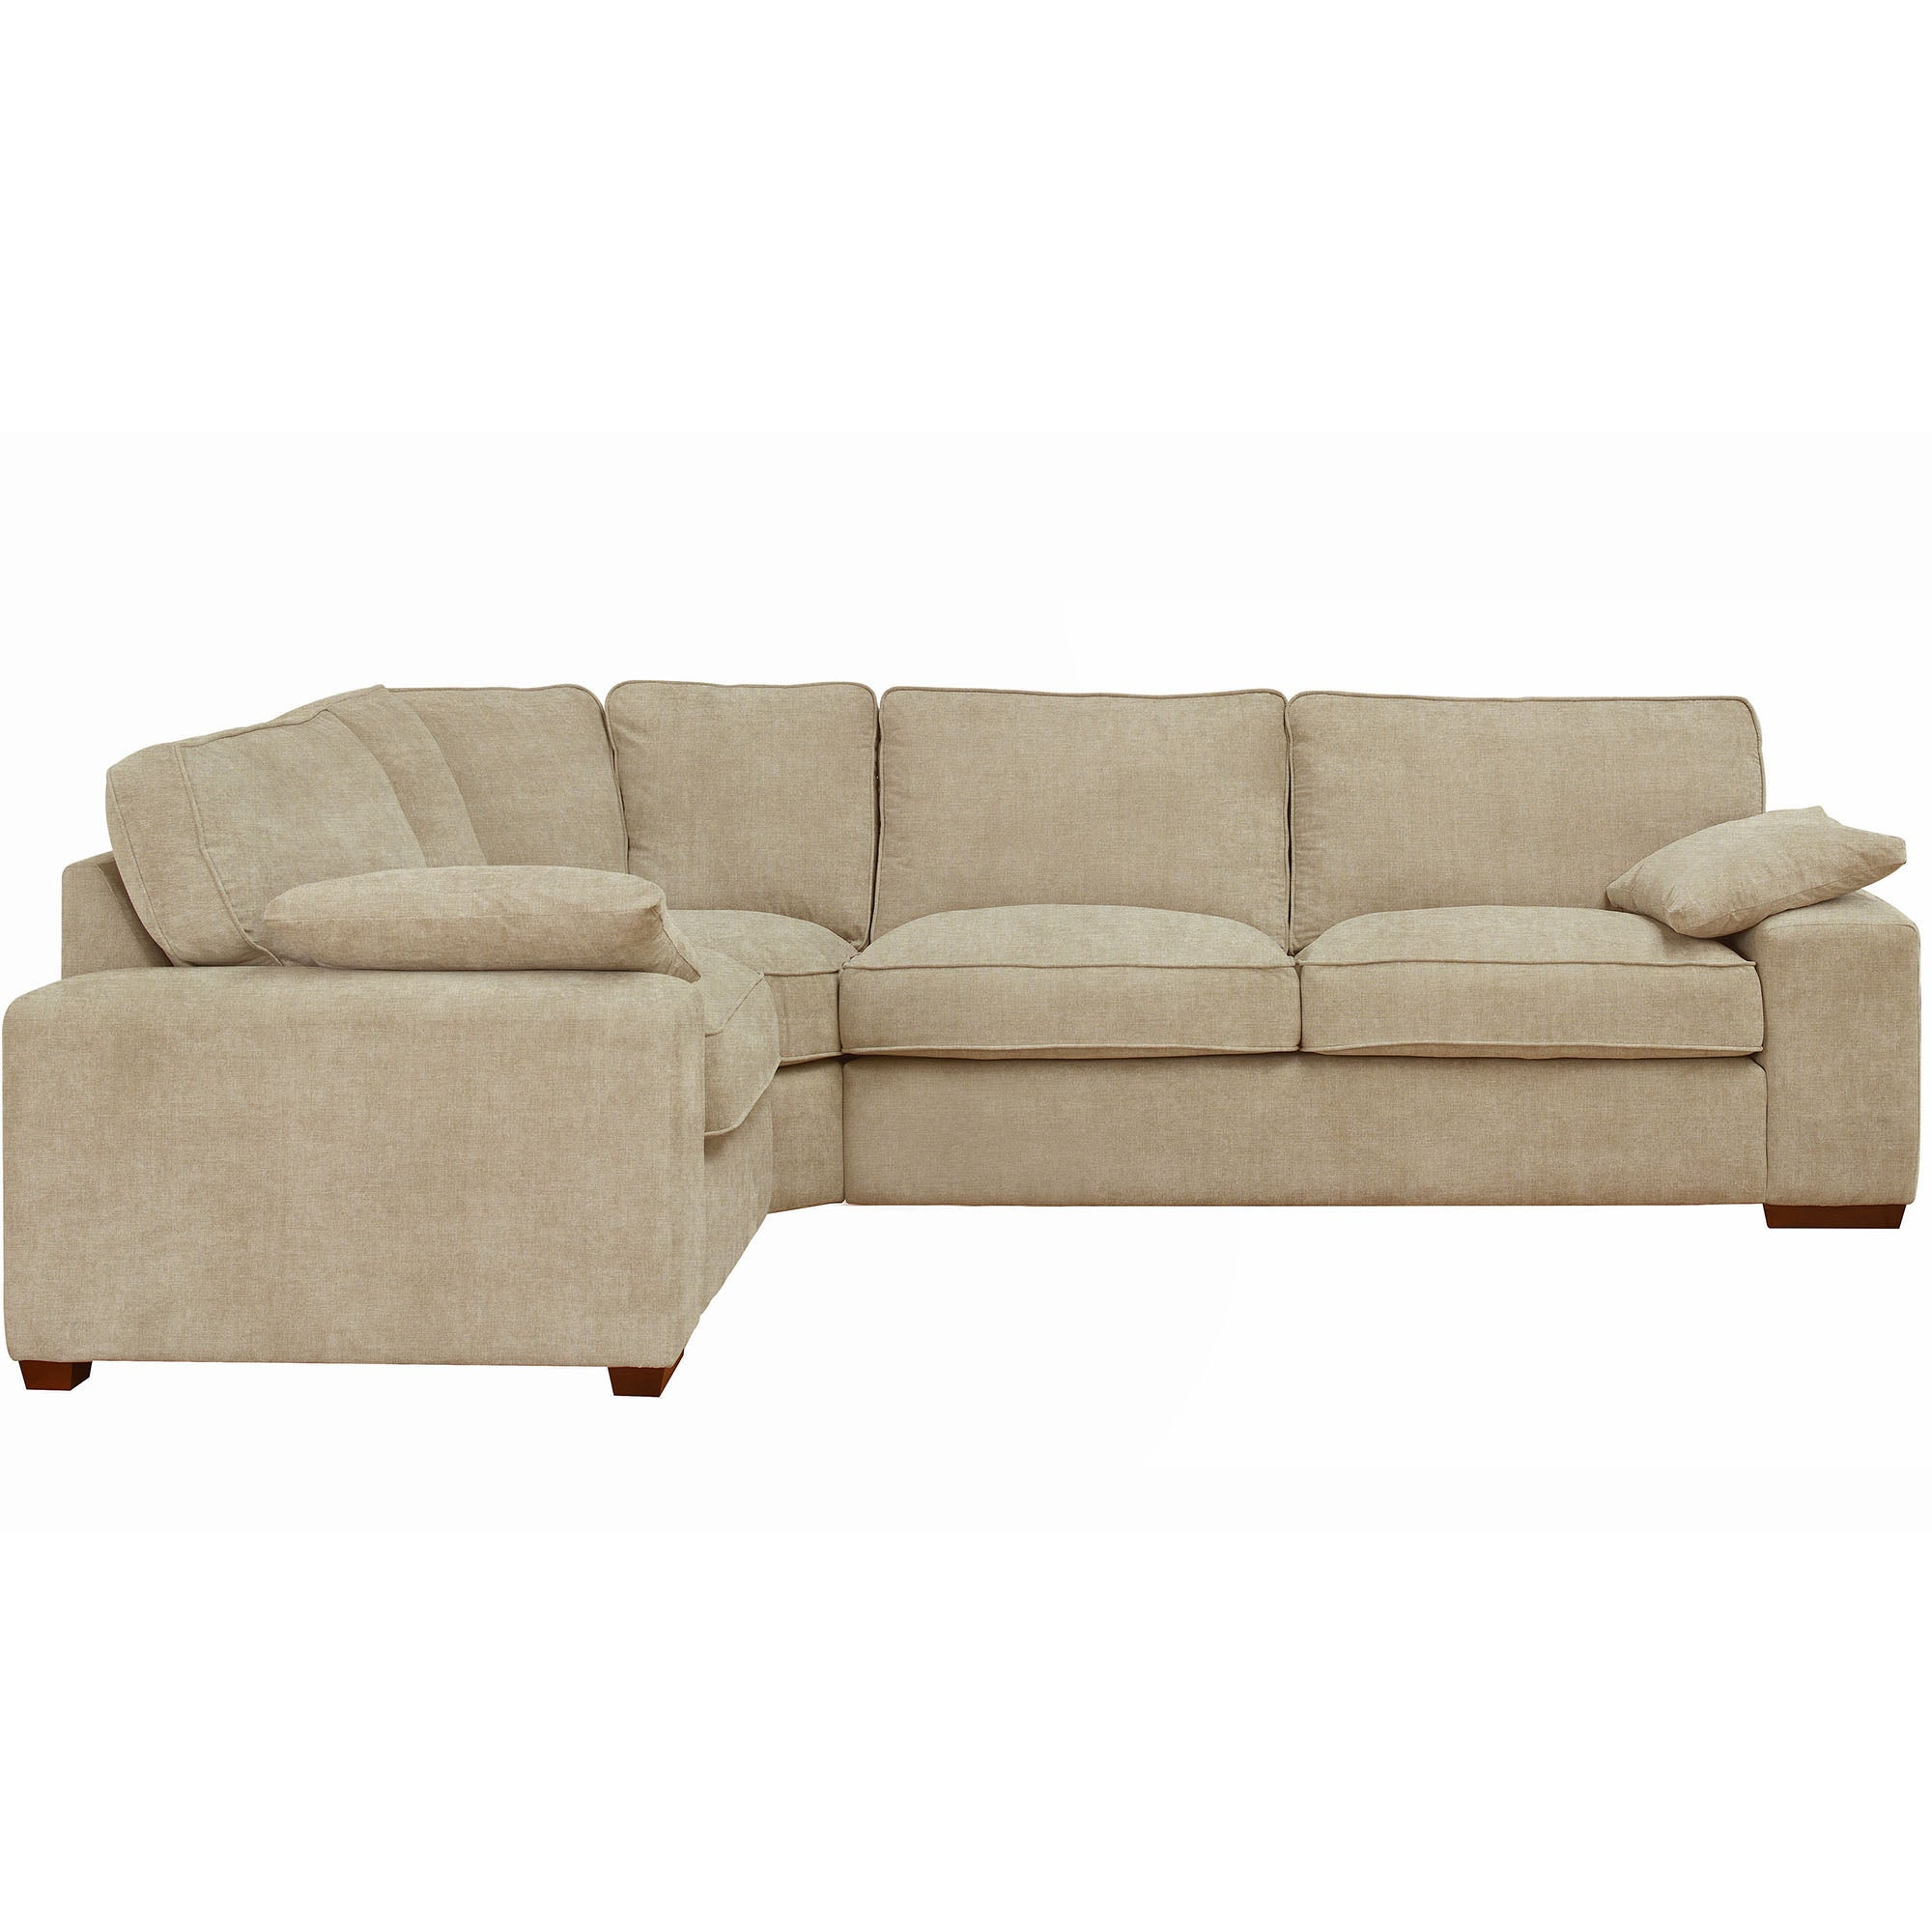 Heston Corner Sofa